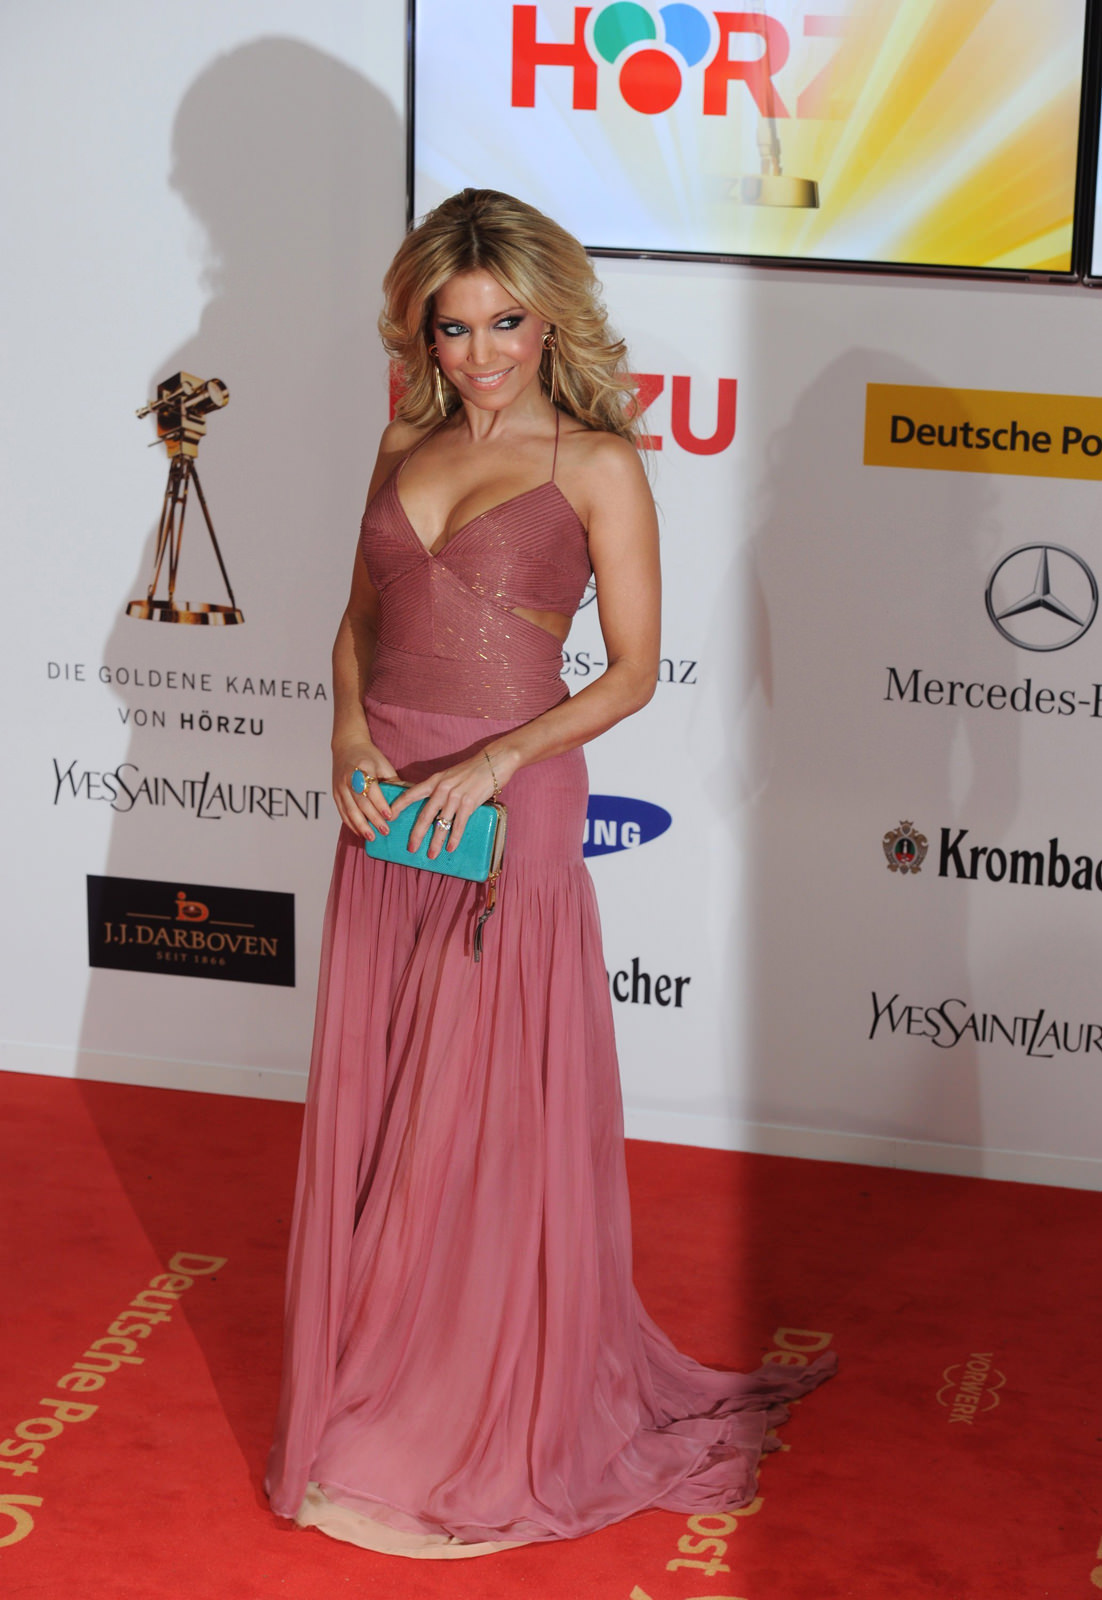 Sylvie van der Vaart Photo Gallery